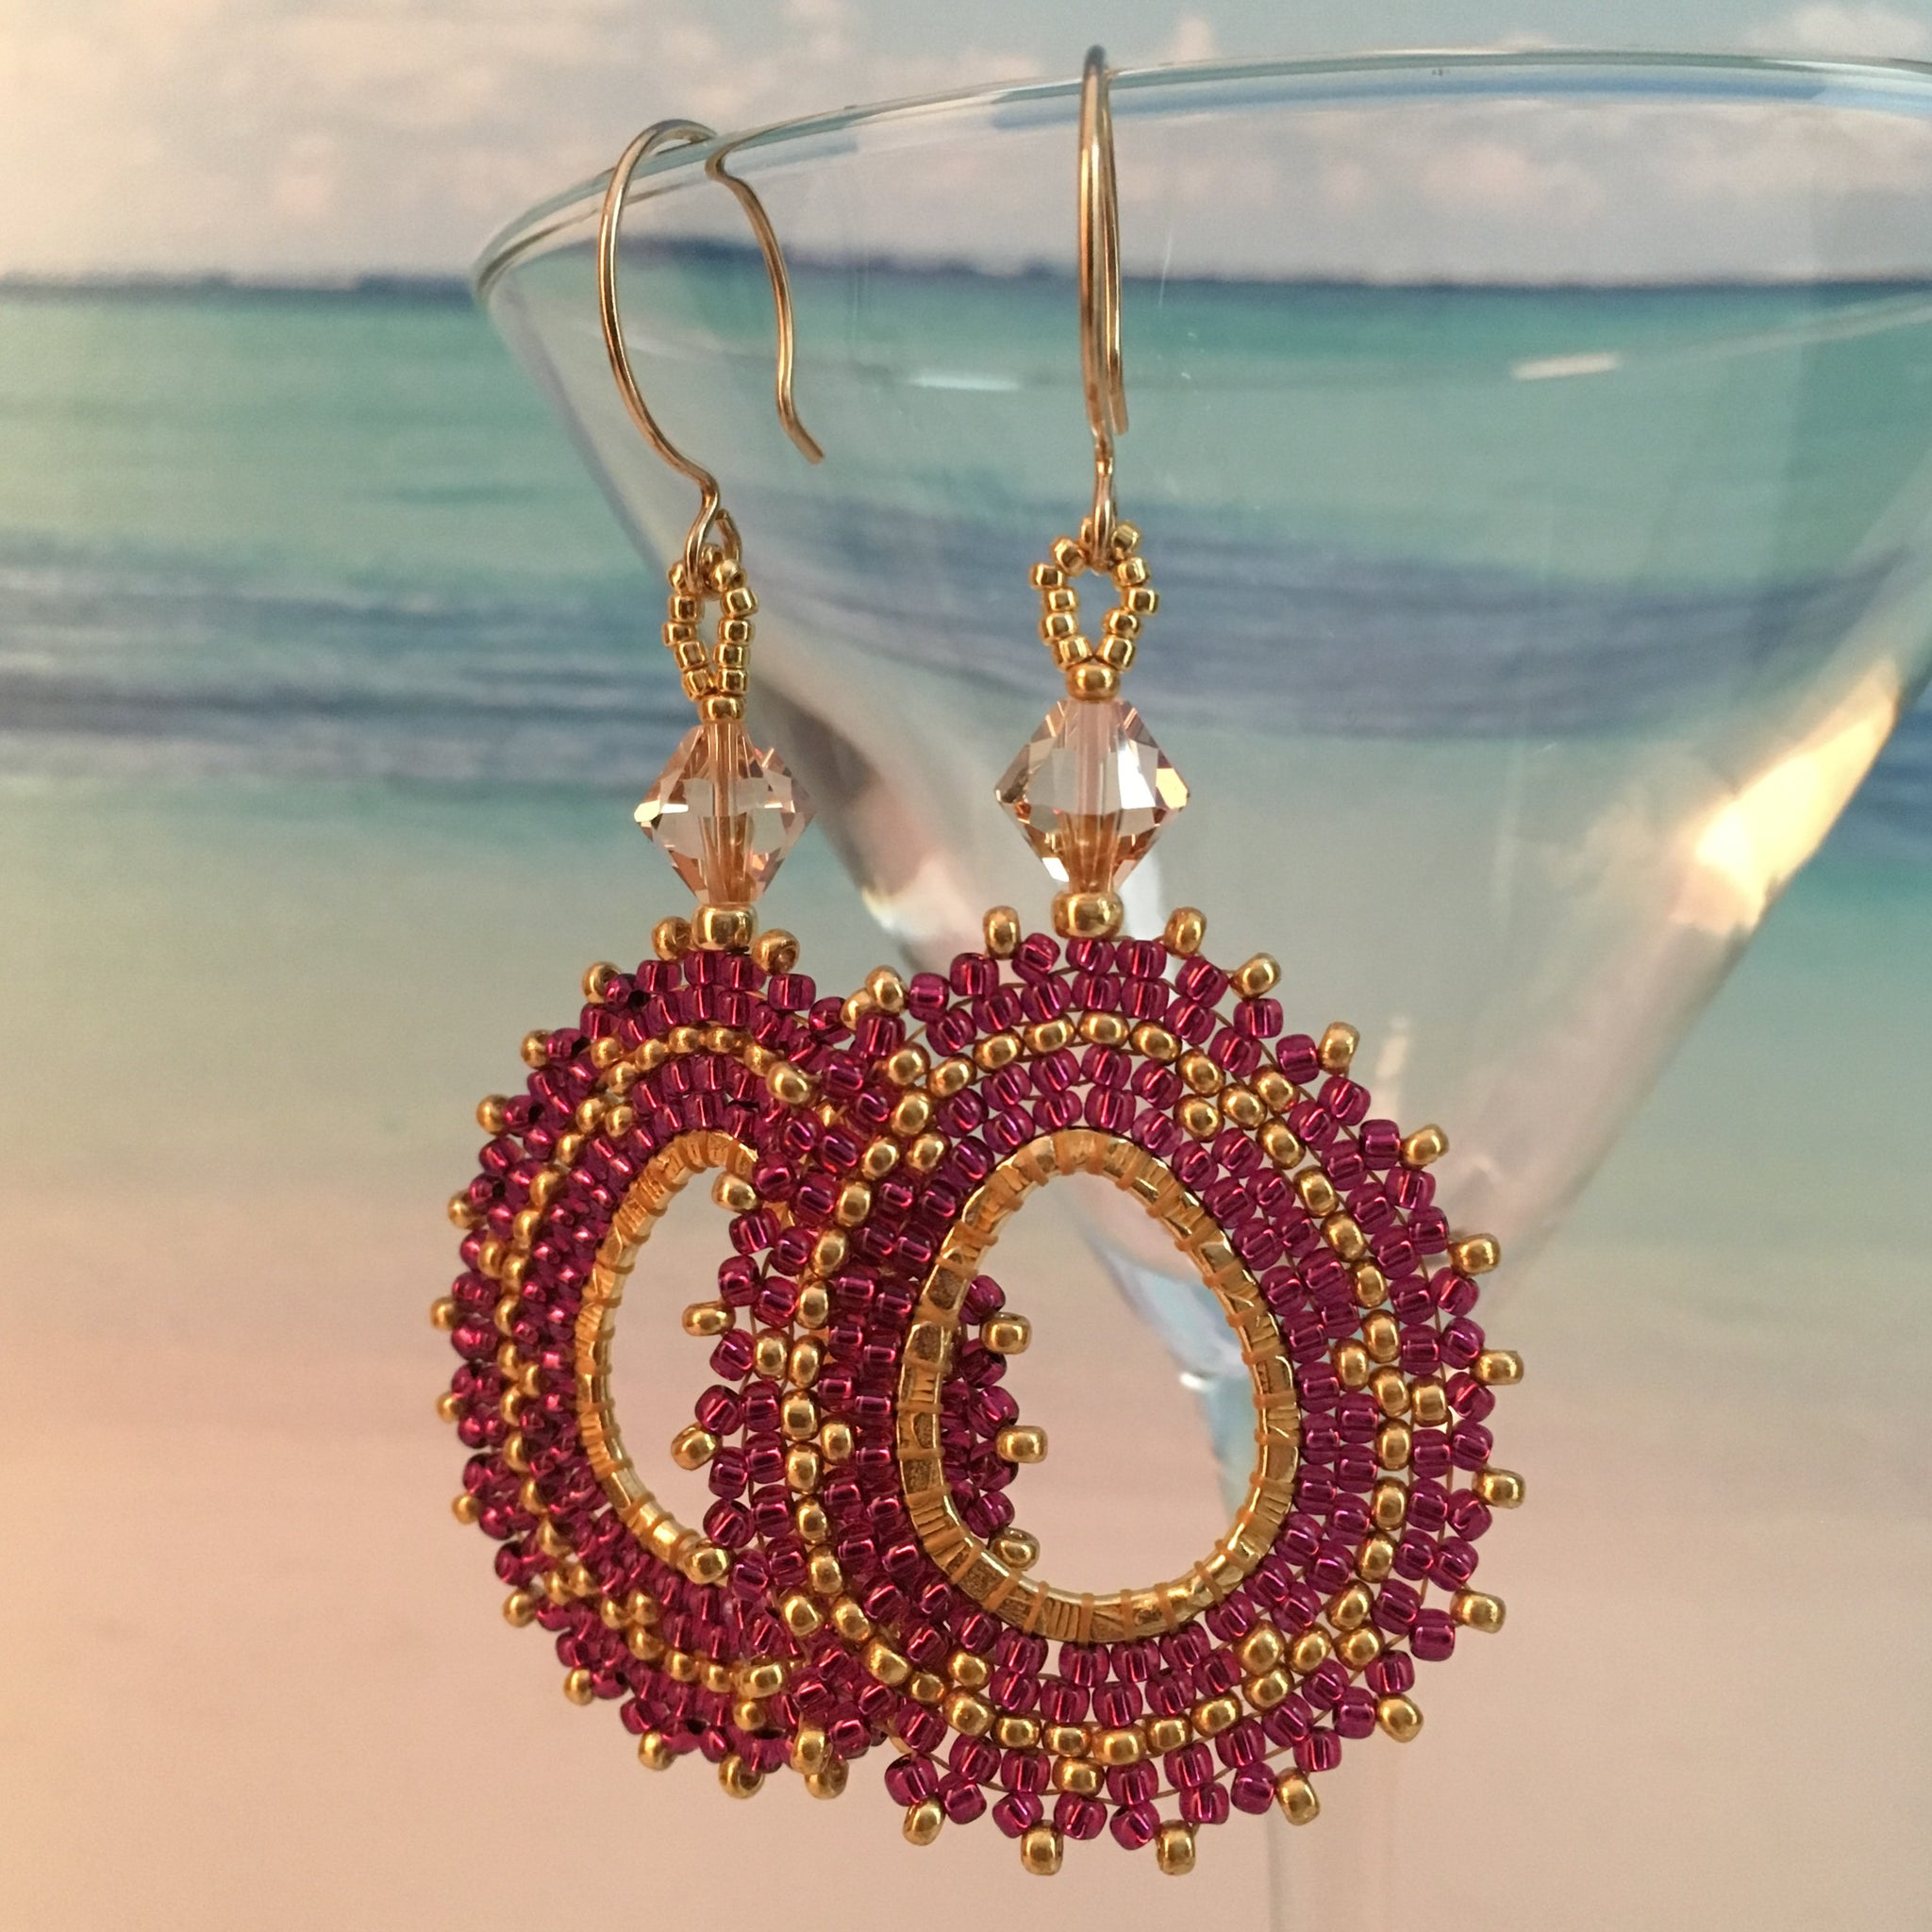 Cranberry Wine and Gold beaded oval teardrop Earrings genuine Swarovski crystals bridal prom elegant sparkle beaded by the beach